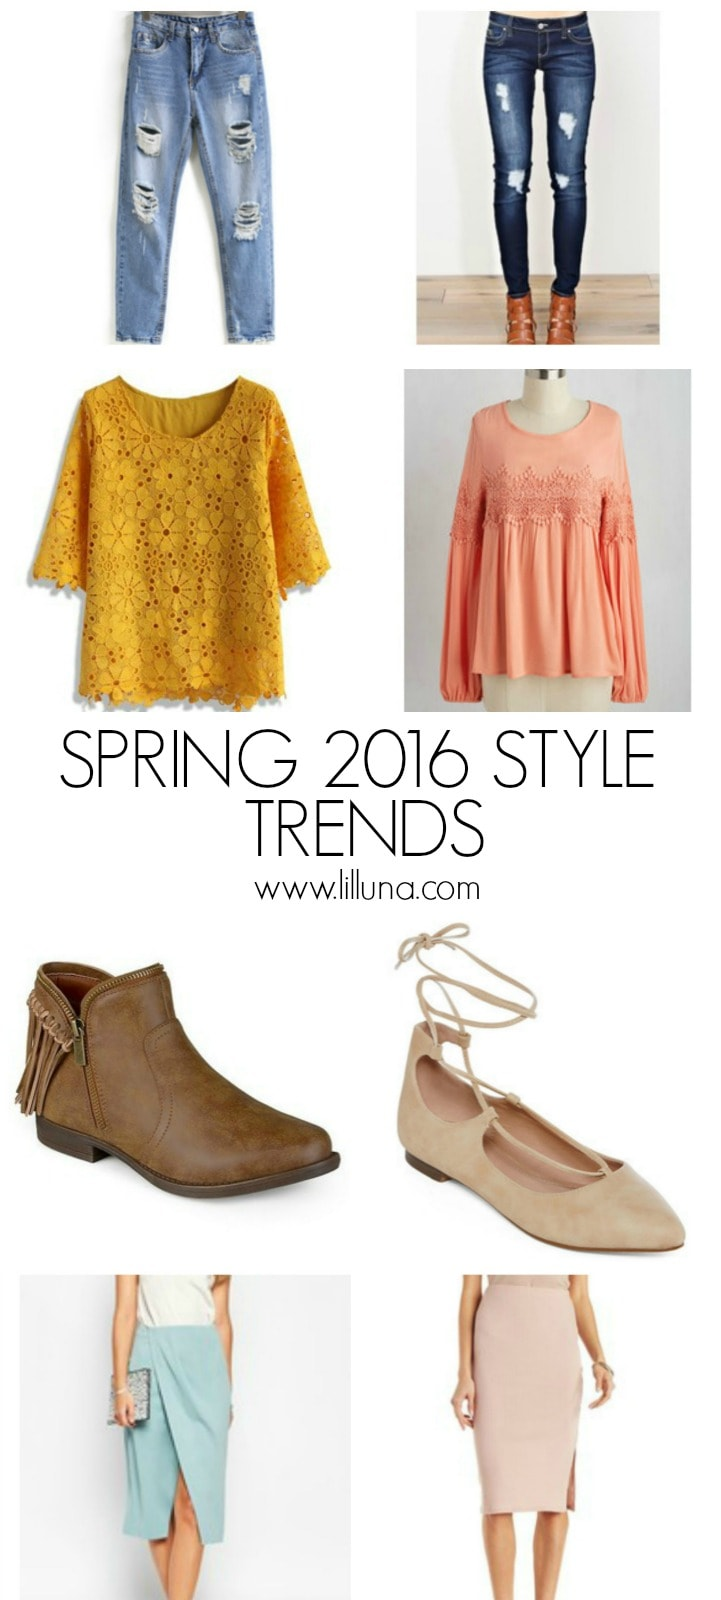 Spring Style Trends - spring has sprung, and we have the latest on this season's style trends! See it on { lilluna.com }!!